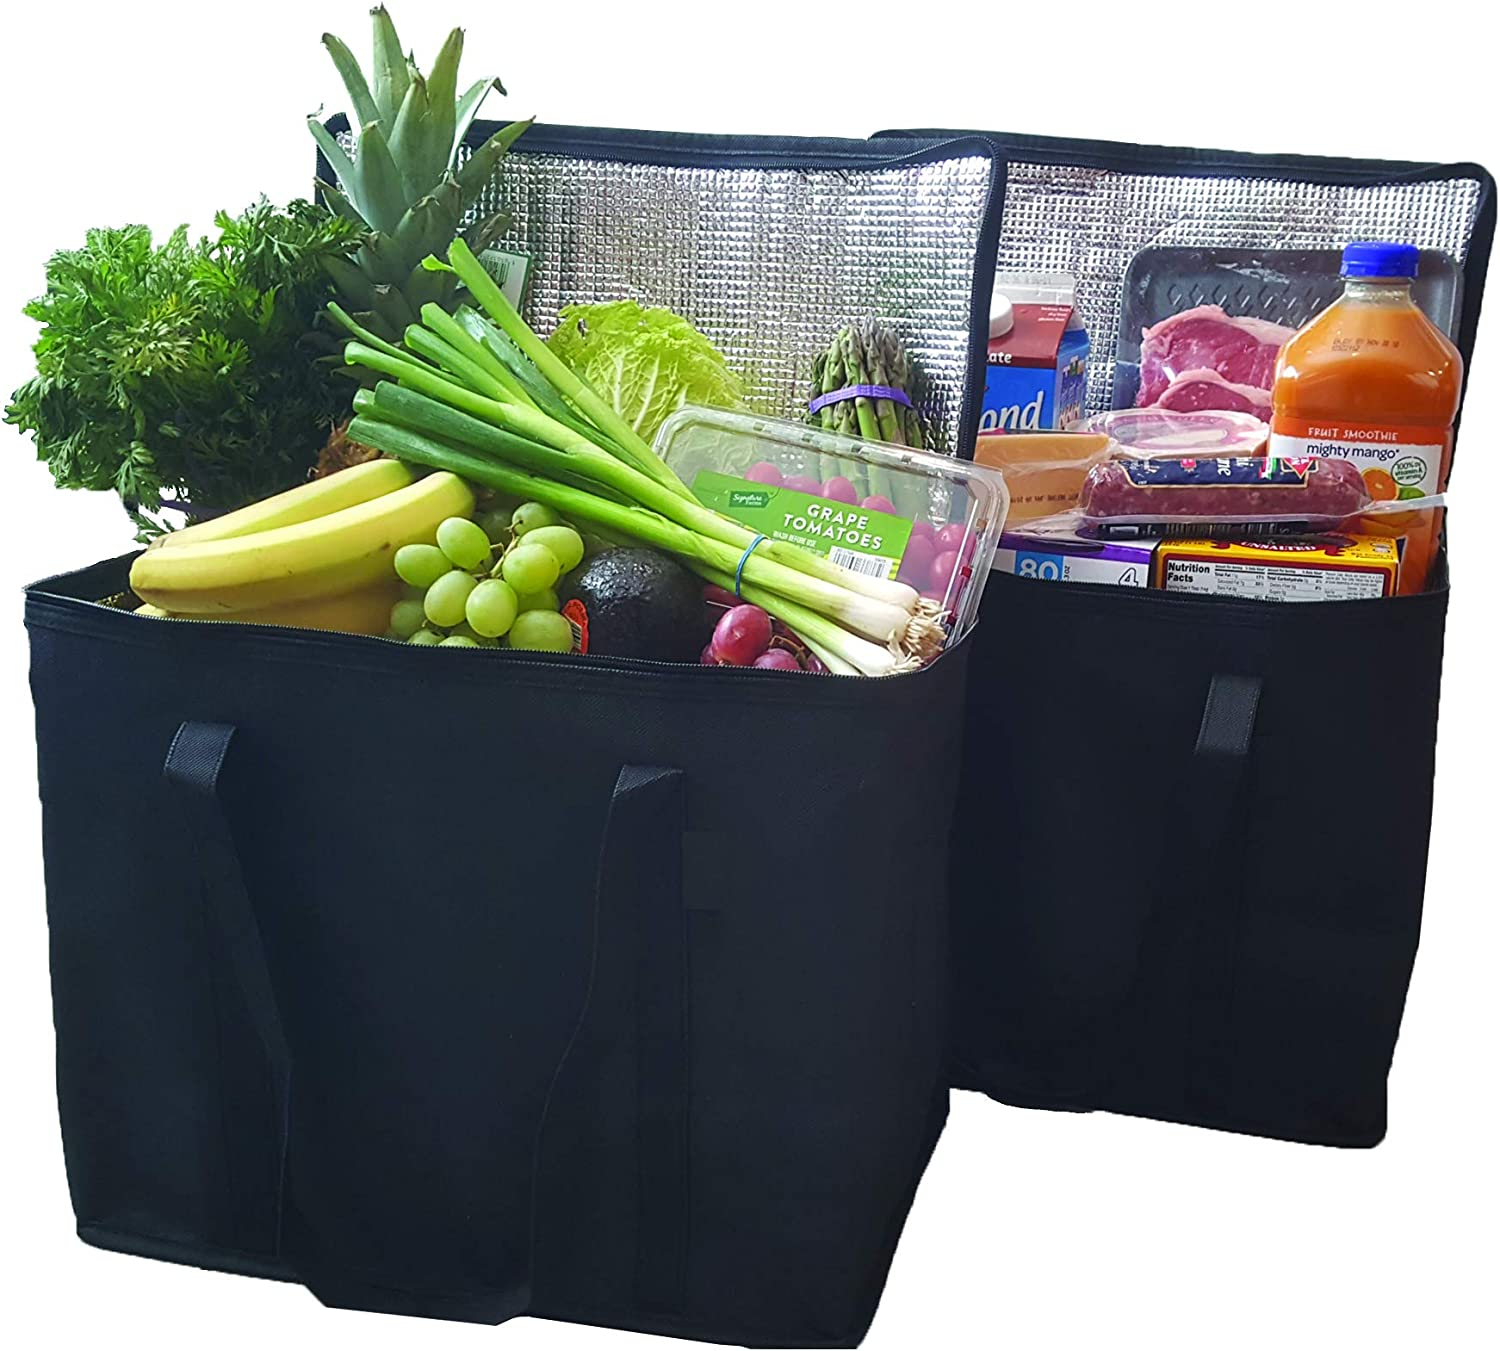 2 Pack Insulated Reusable Grocery Bags by 1 Click, Extra Large, Foldable, Stands Upright, Sturdy Zipper, Washable, Reinforced Handles